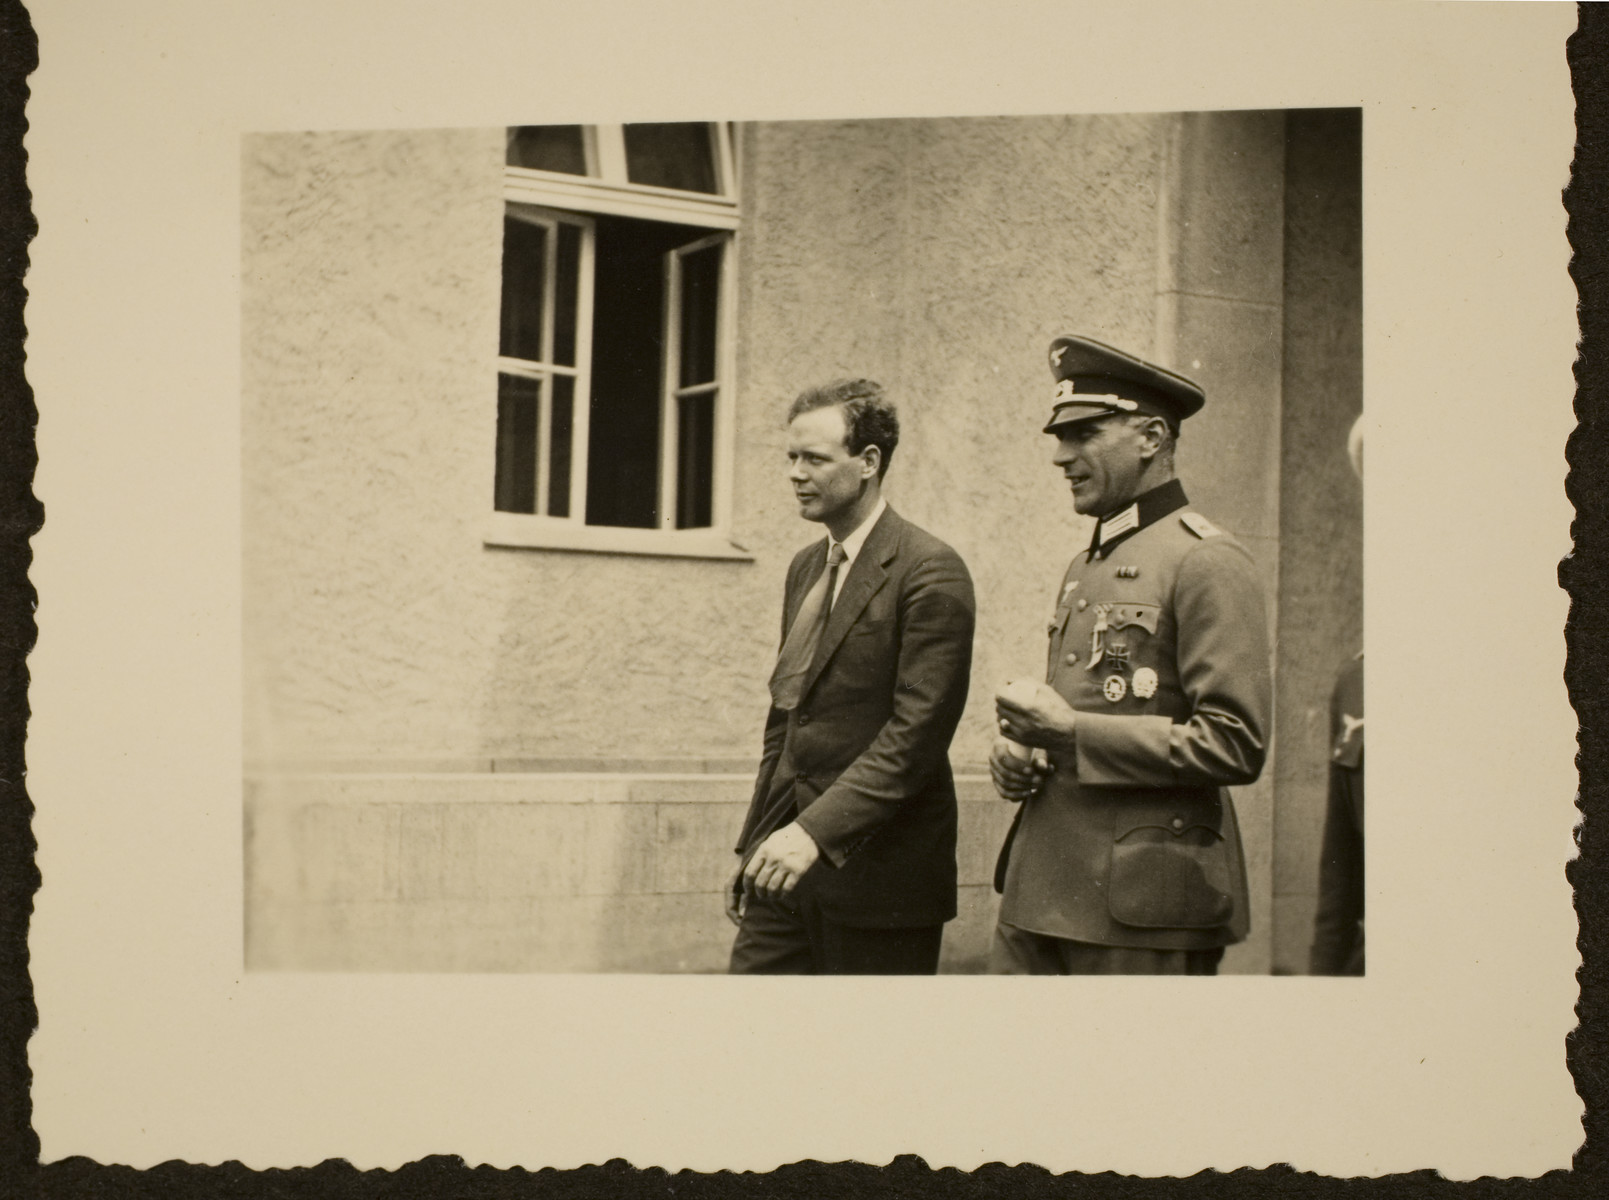 Charles Lindbergh, accompanied by a Nazi officer, walks past a building during the Berlin Olympics.